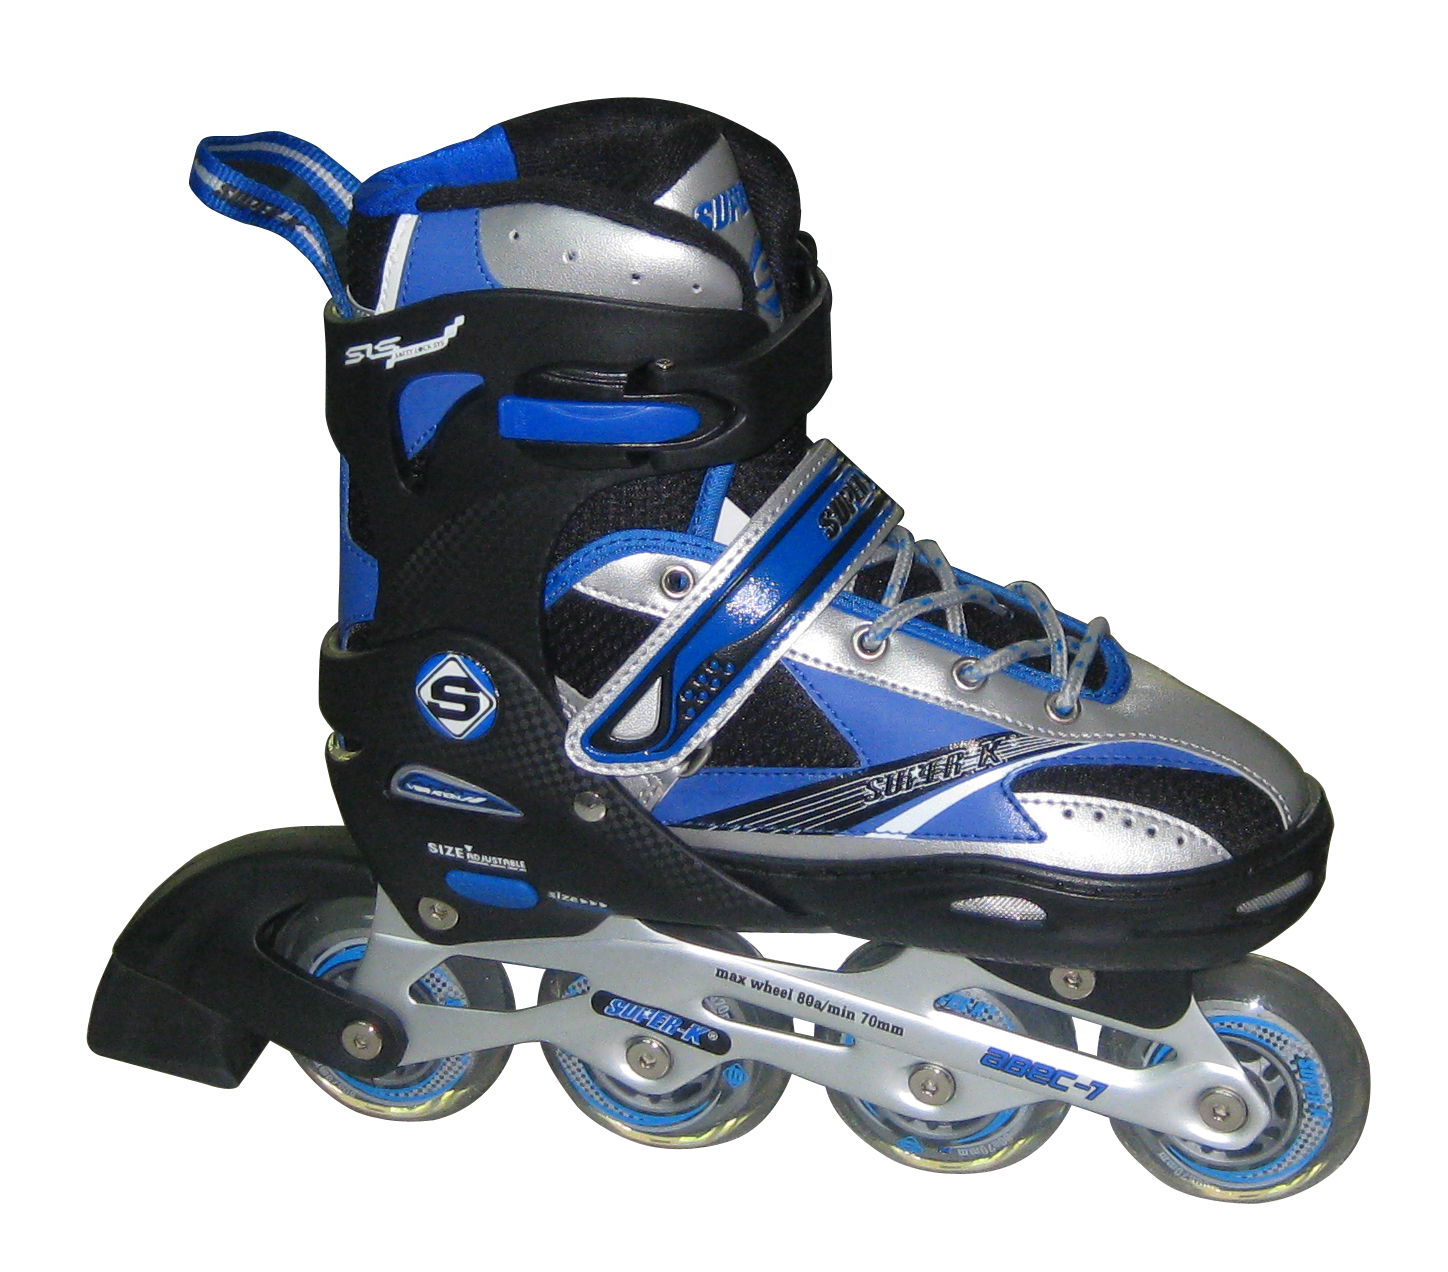 Roller skating shoes price in pakistan - Inline Skate Shoes In Pakistan